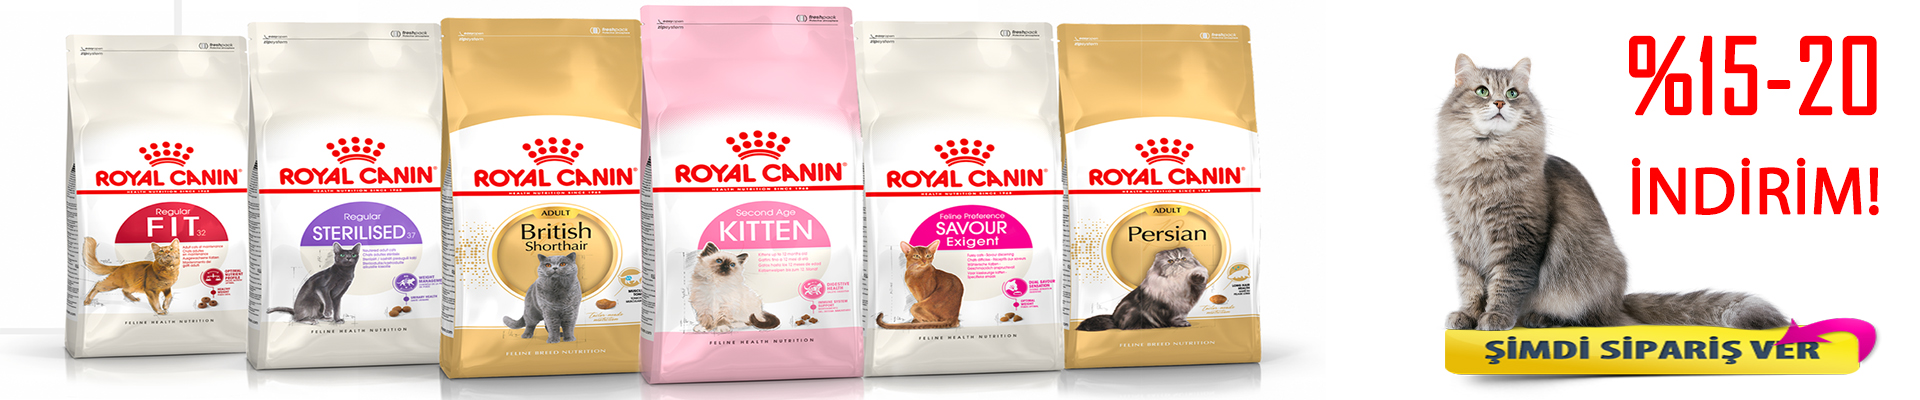 Royal Canin - (1)